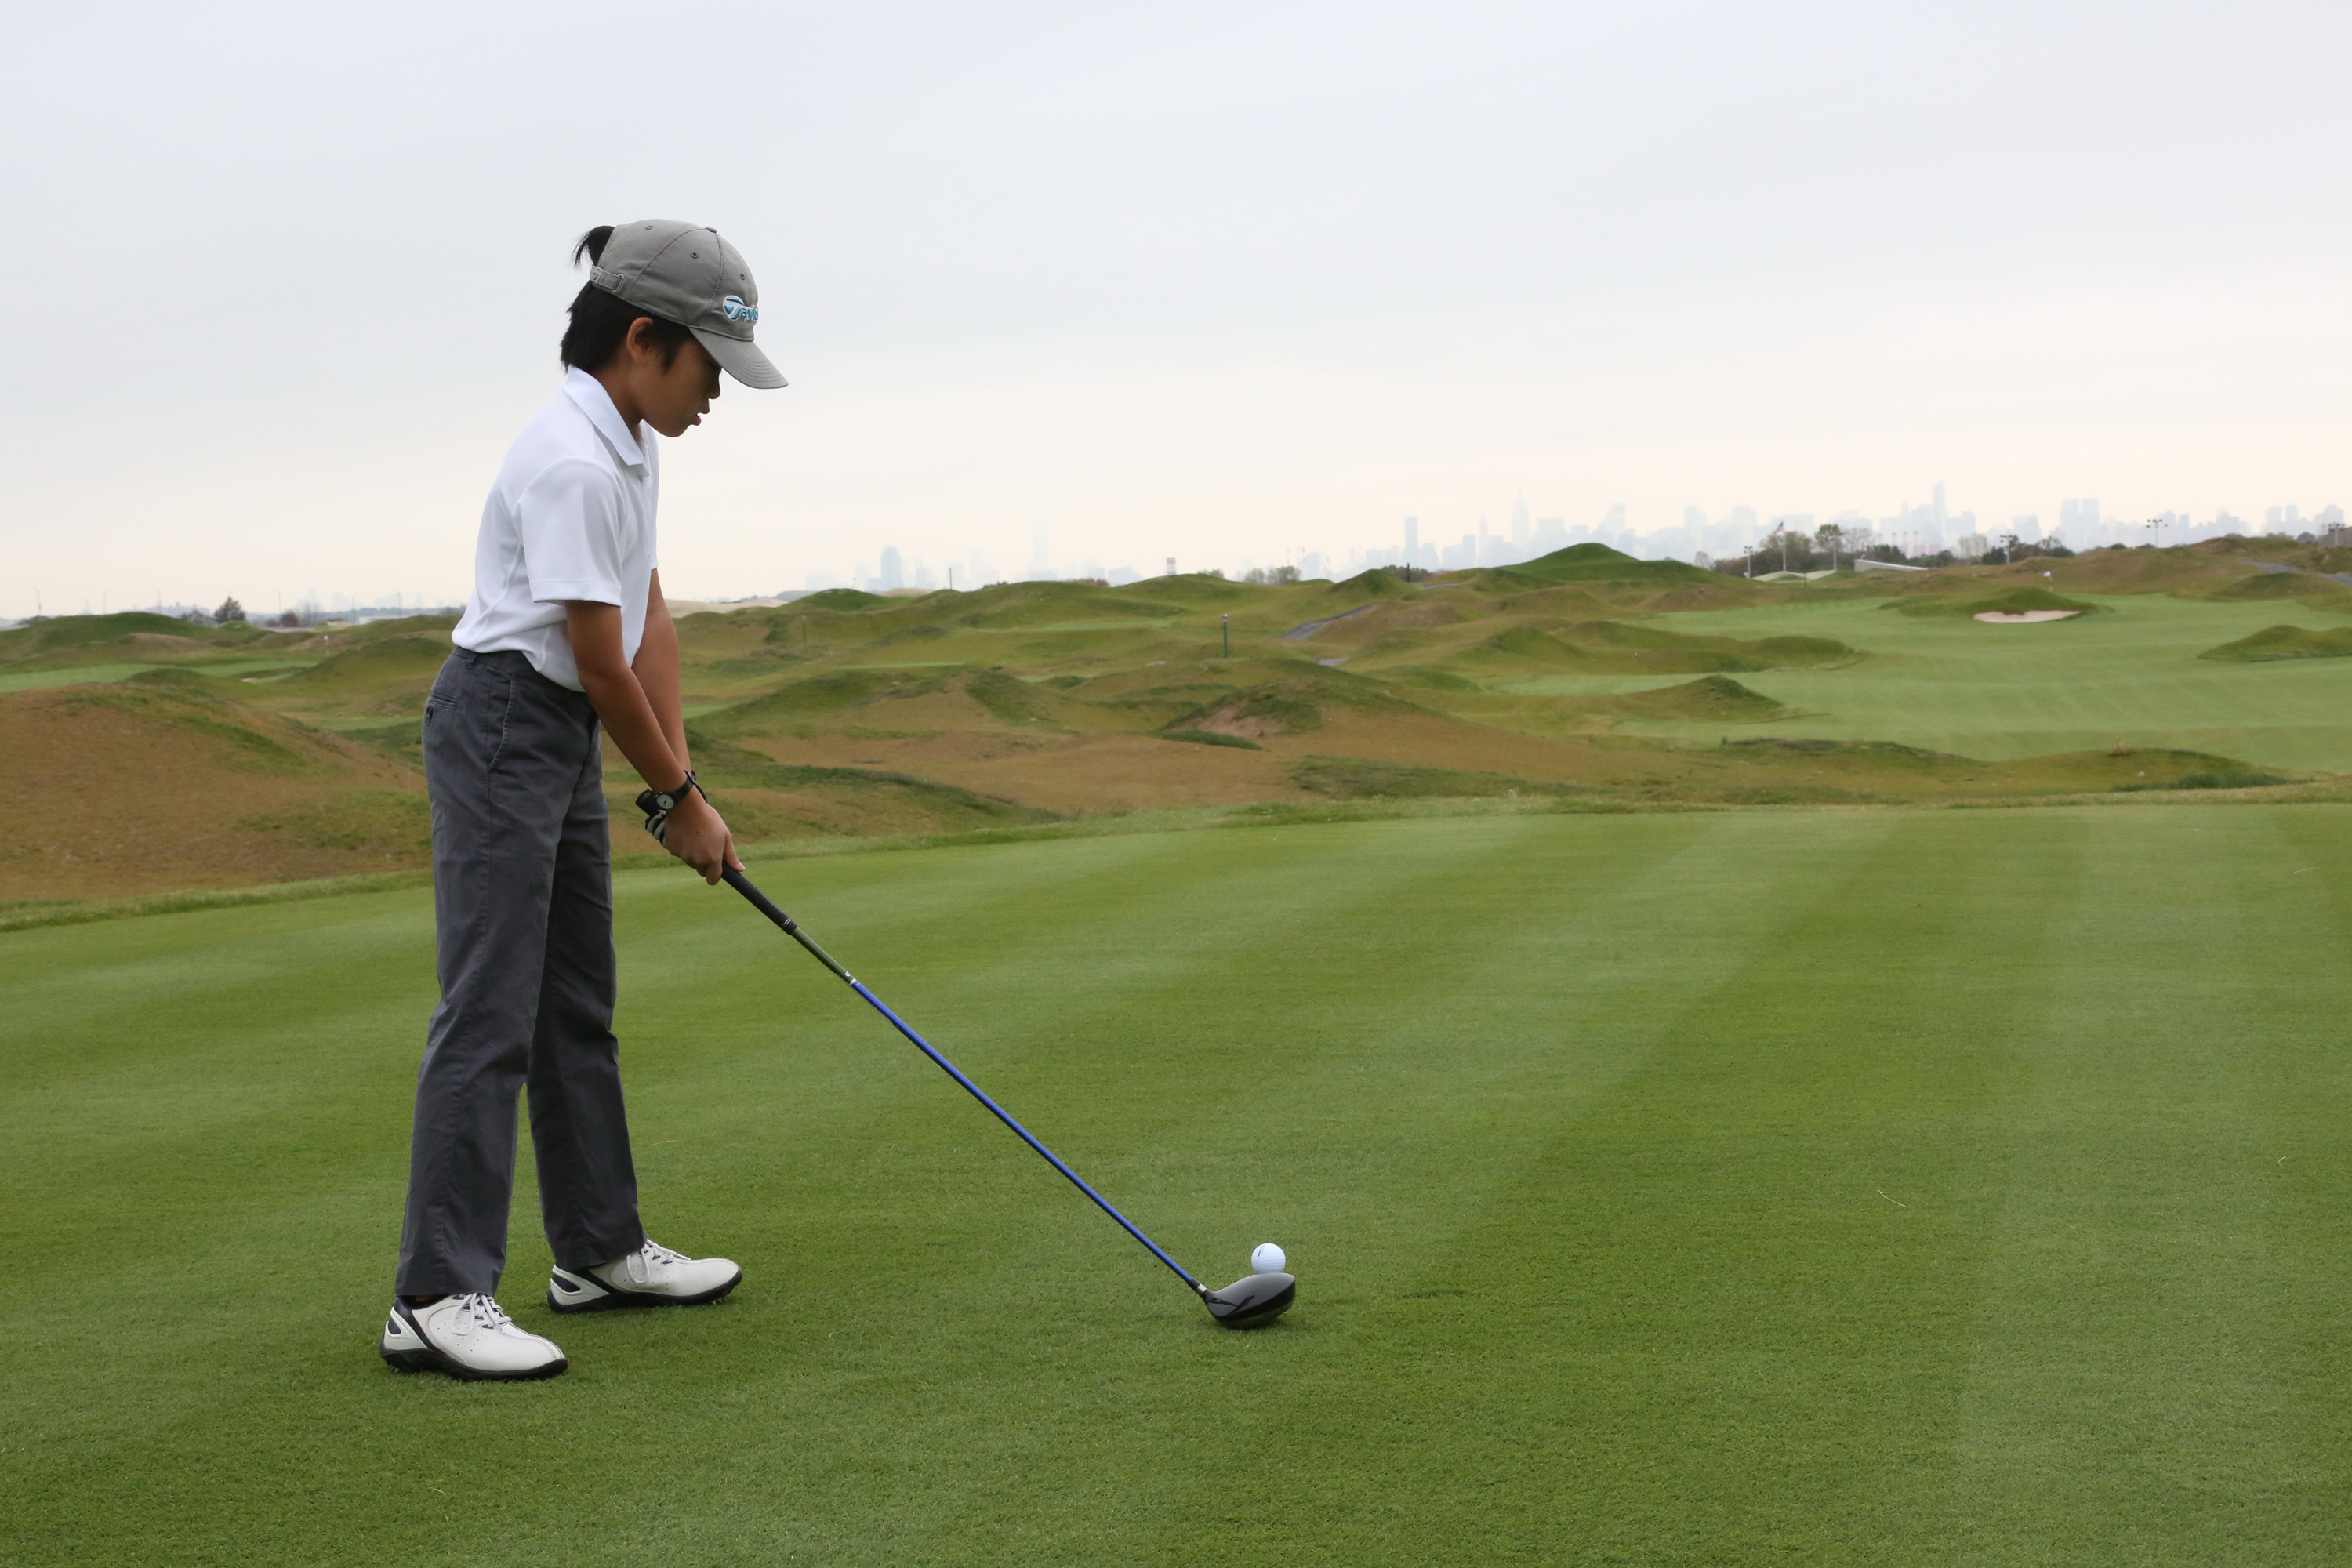 A young player gets ready to tee off during the 2013 opening of the Trump Golf Links in The Bronx.